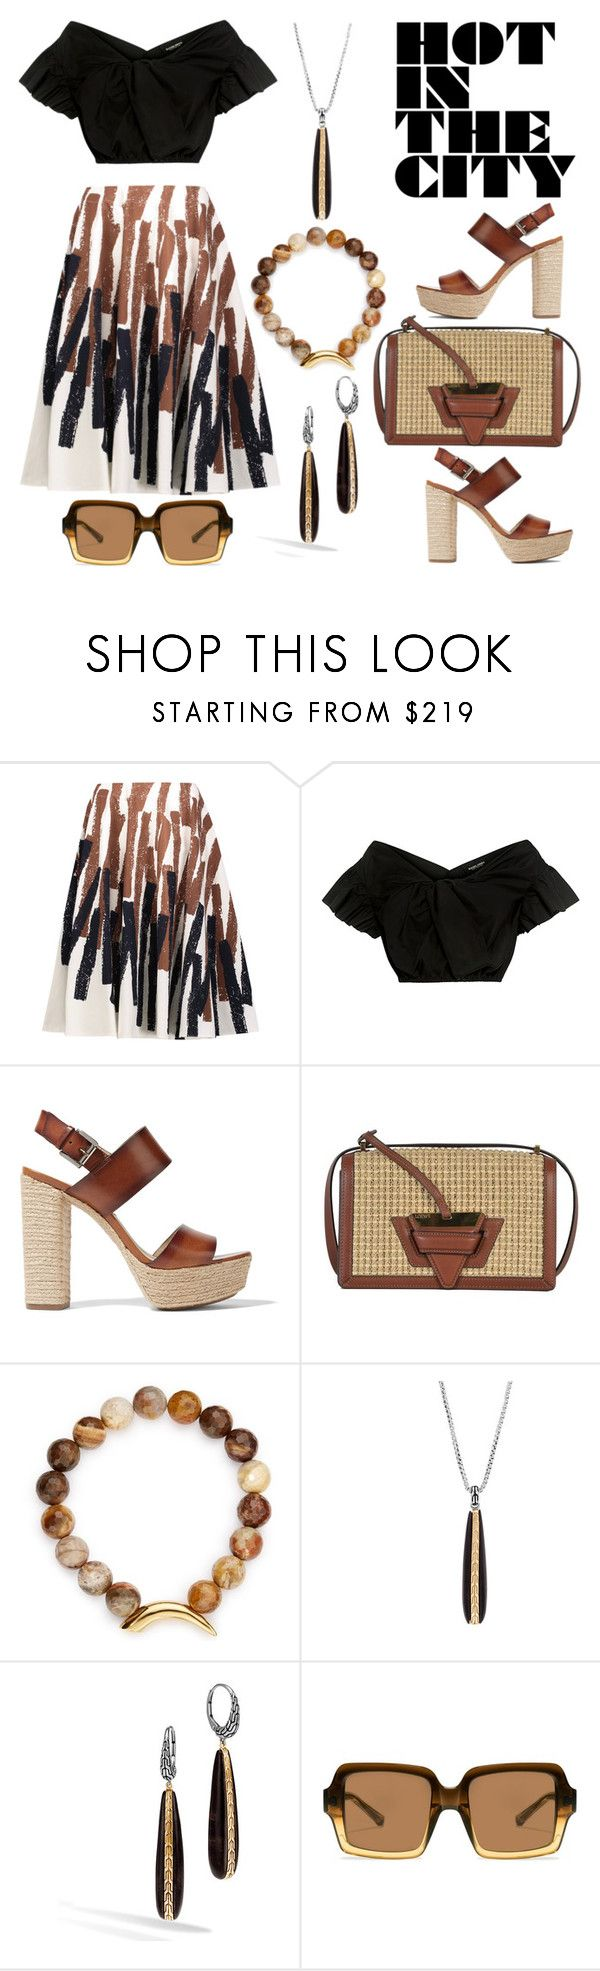 """""""Linen Skirt"""" by hastypudding ❤ liked on Polyvore featuring Marni, Rachel Comey, Michael Kors, Loewe, Pembe Club, John Hardy and The Row"""